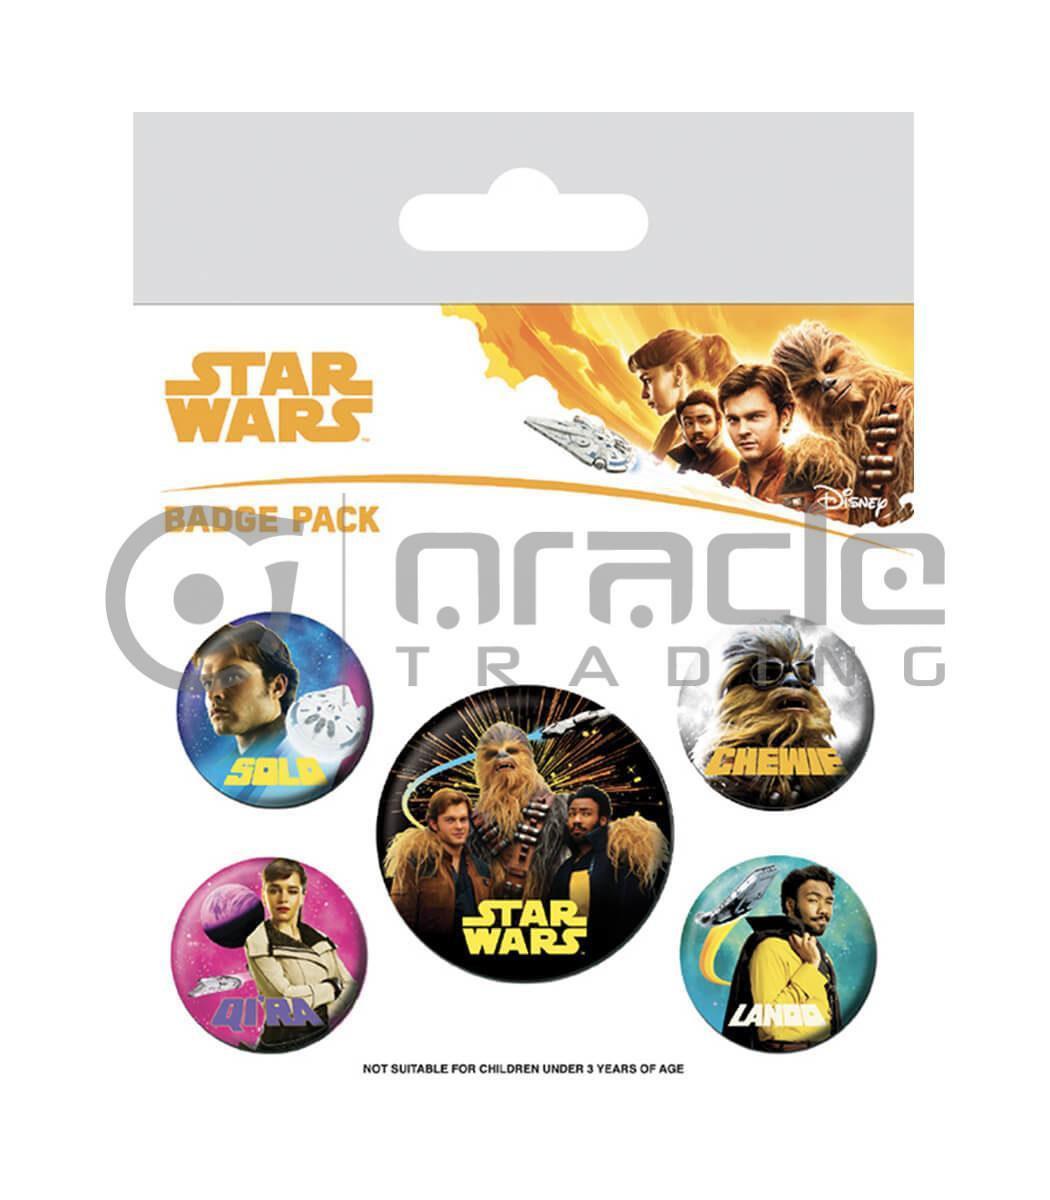 Star Wars Badge Pack - Solo